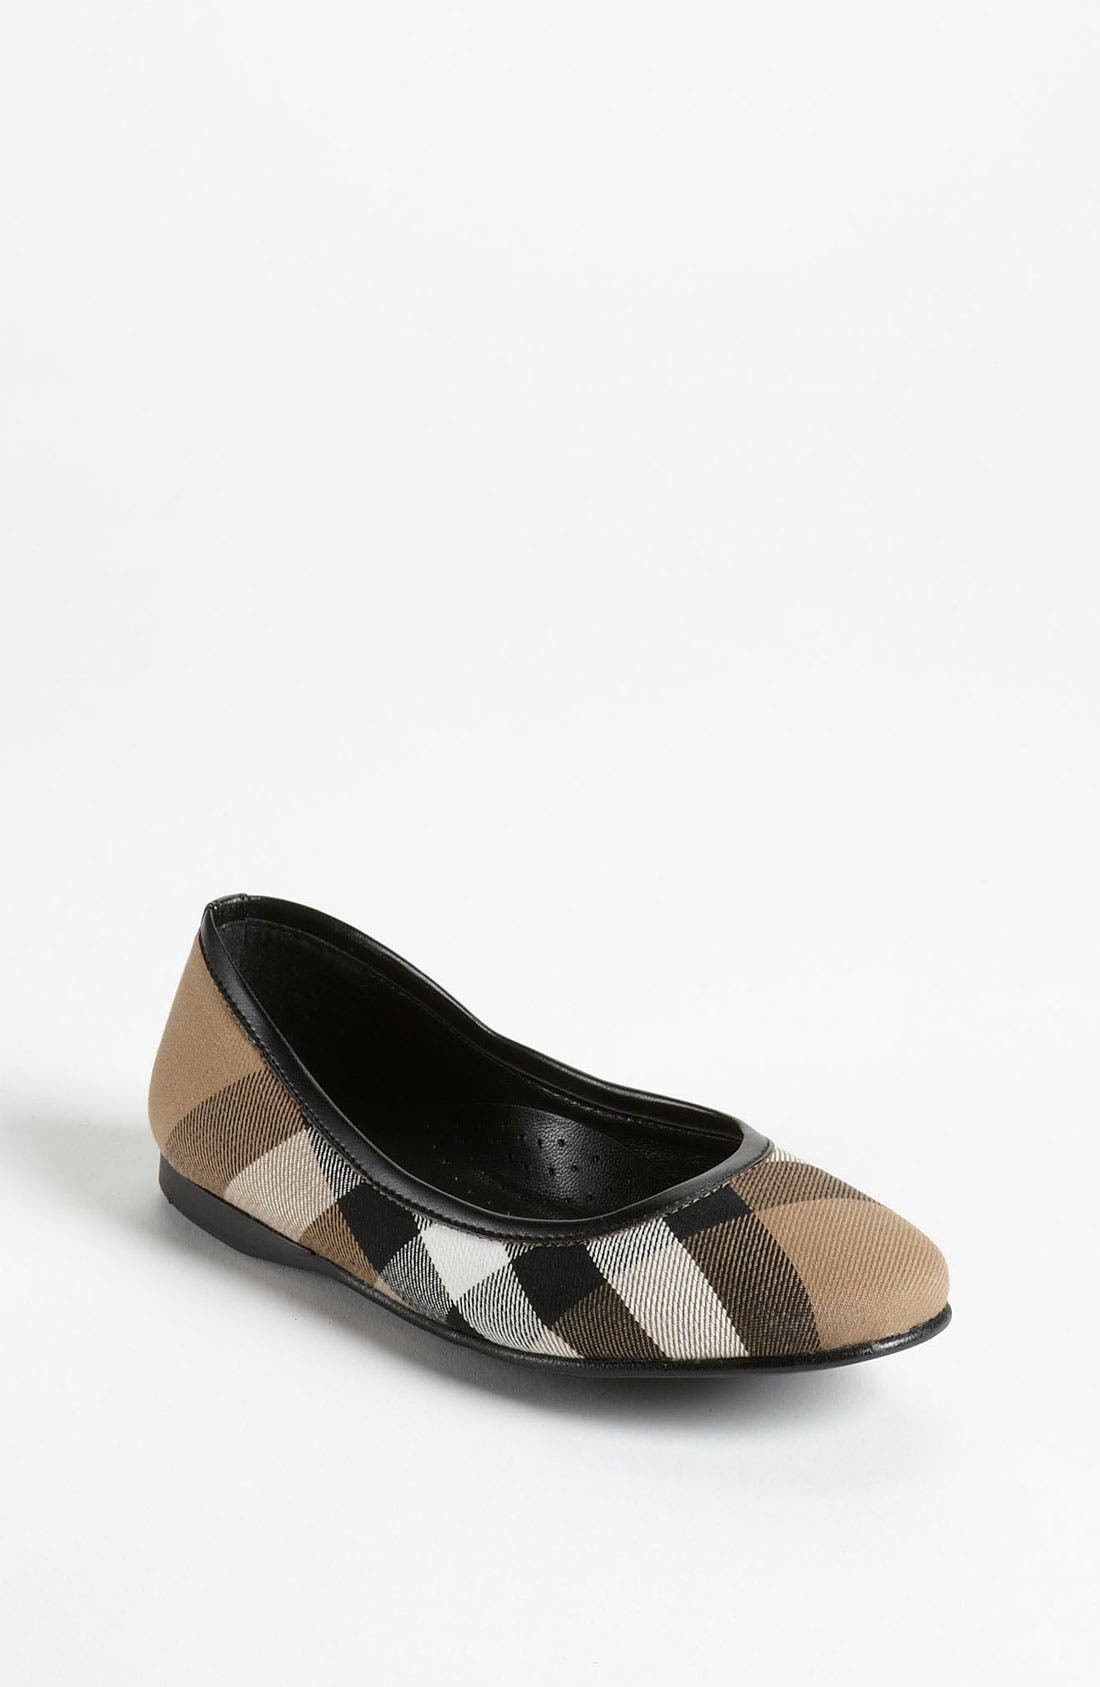 Alternate Image 1 Selected - Burberry 'Adelle' Flat (Walker, Toddler, Little Kid & Big Kid)